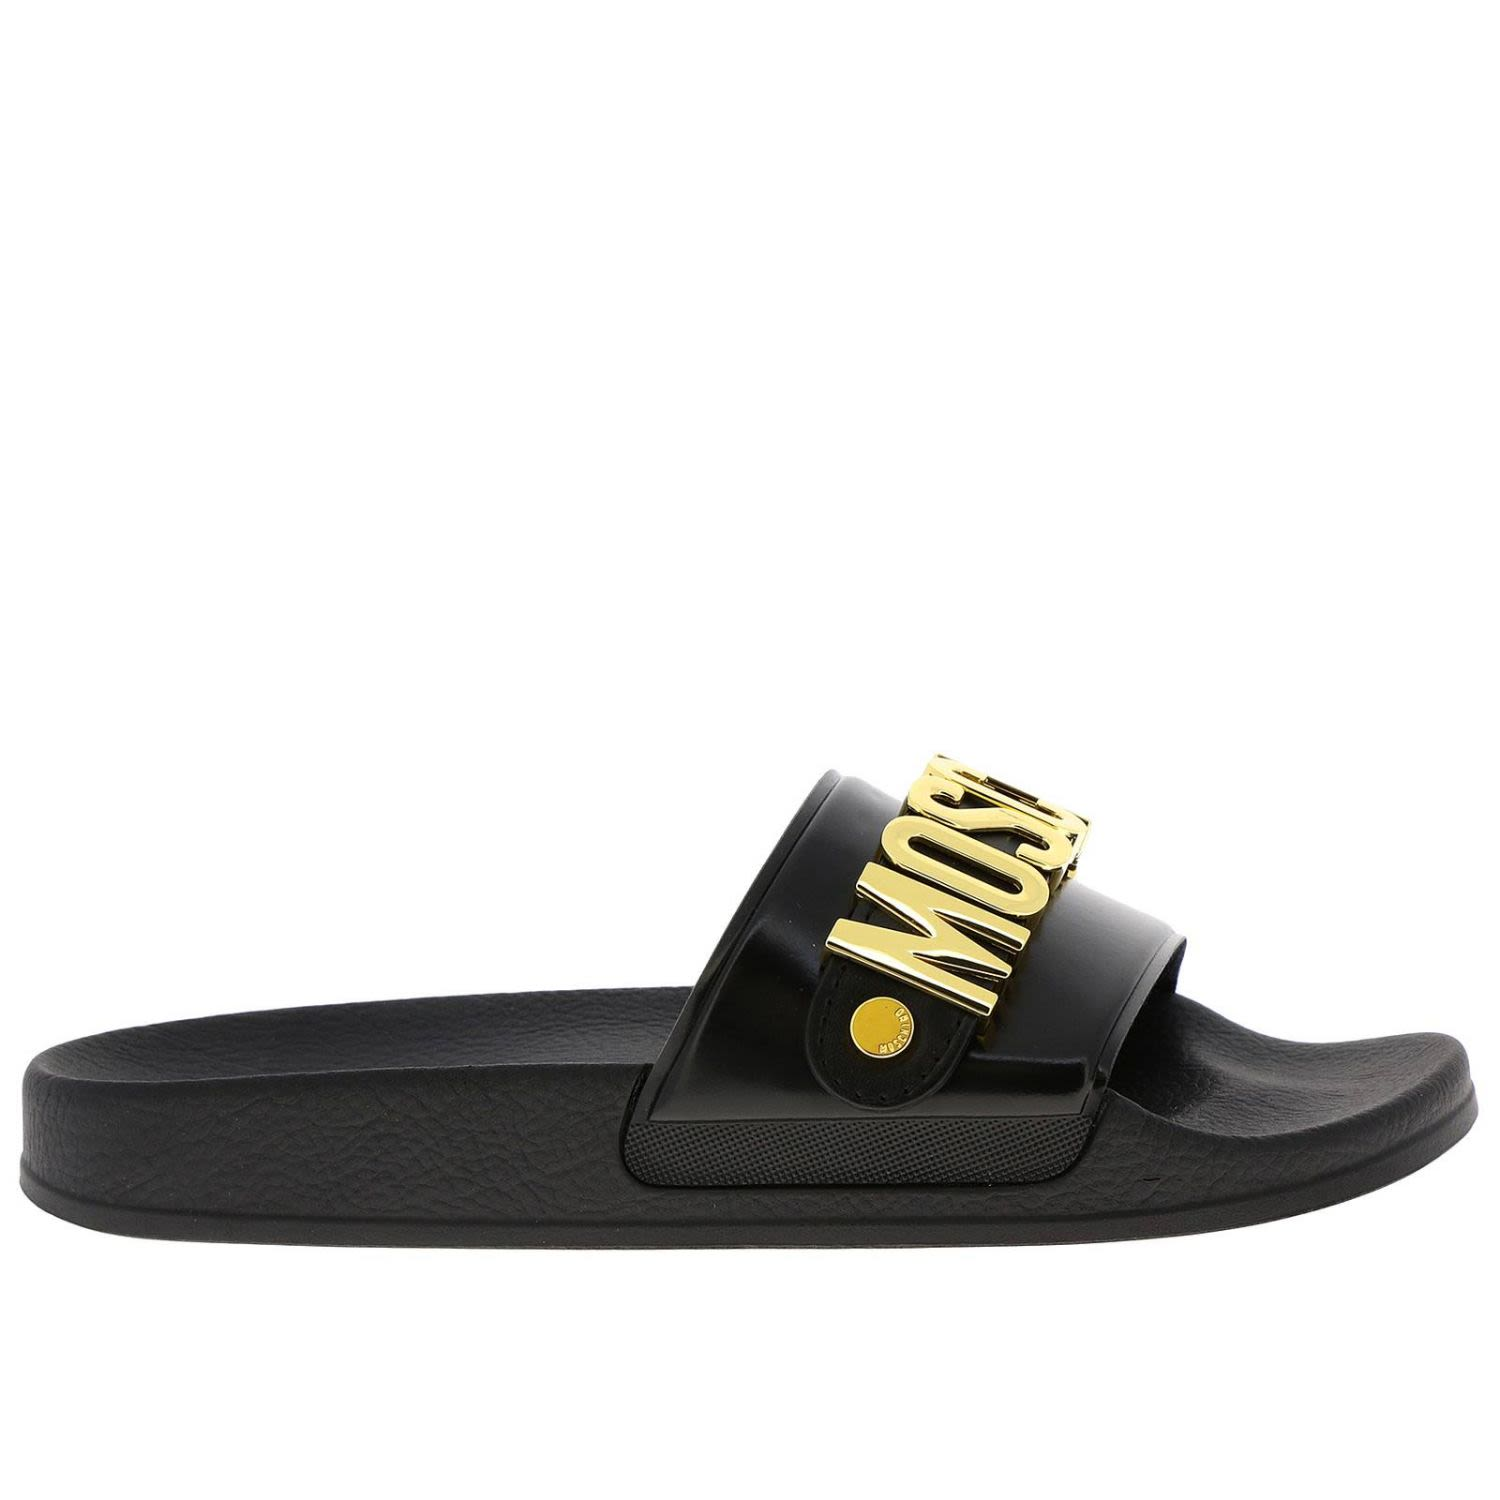 131172ccad7 Moschino Moschino Couture Flat Sandals Shoes Women Moschino Couture ...